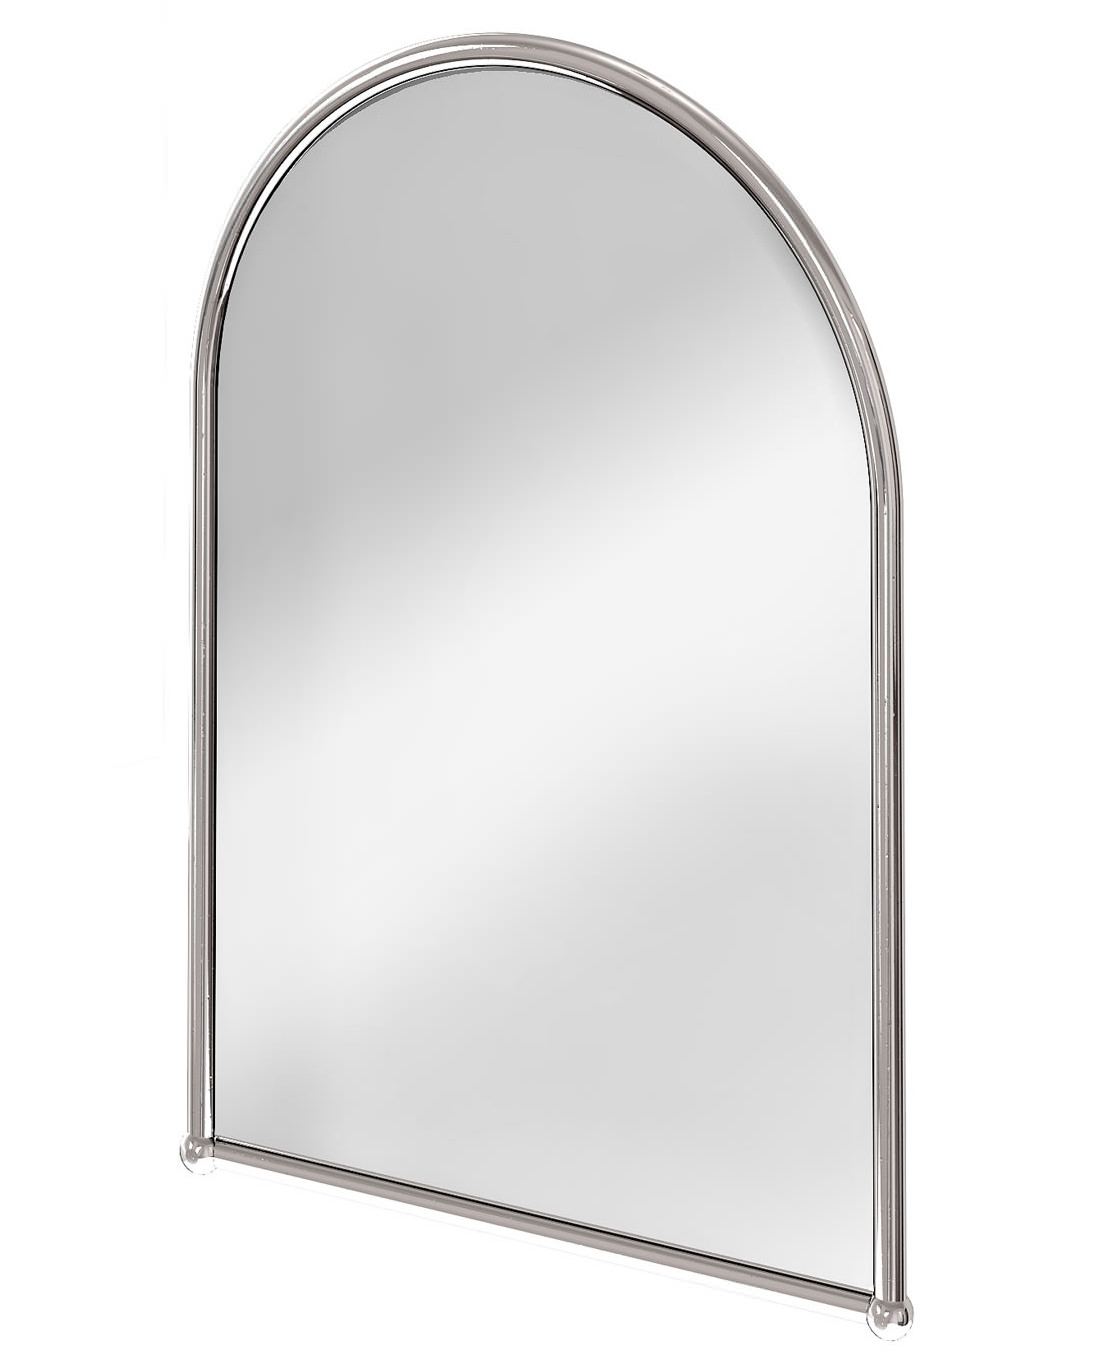 Bathroom Mirror Chrome arched mirror with chrome frame - a9 chr